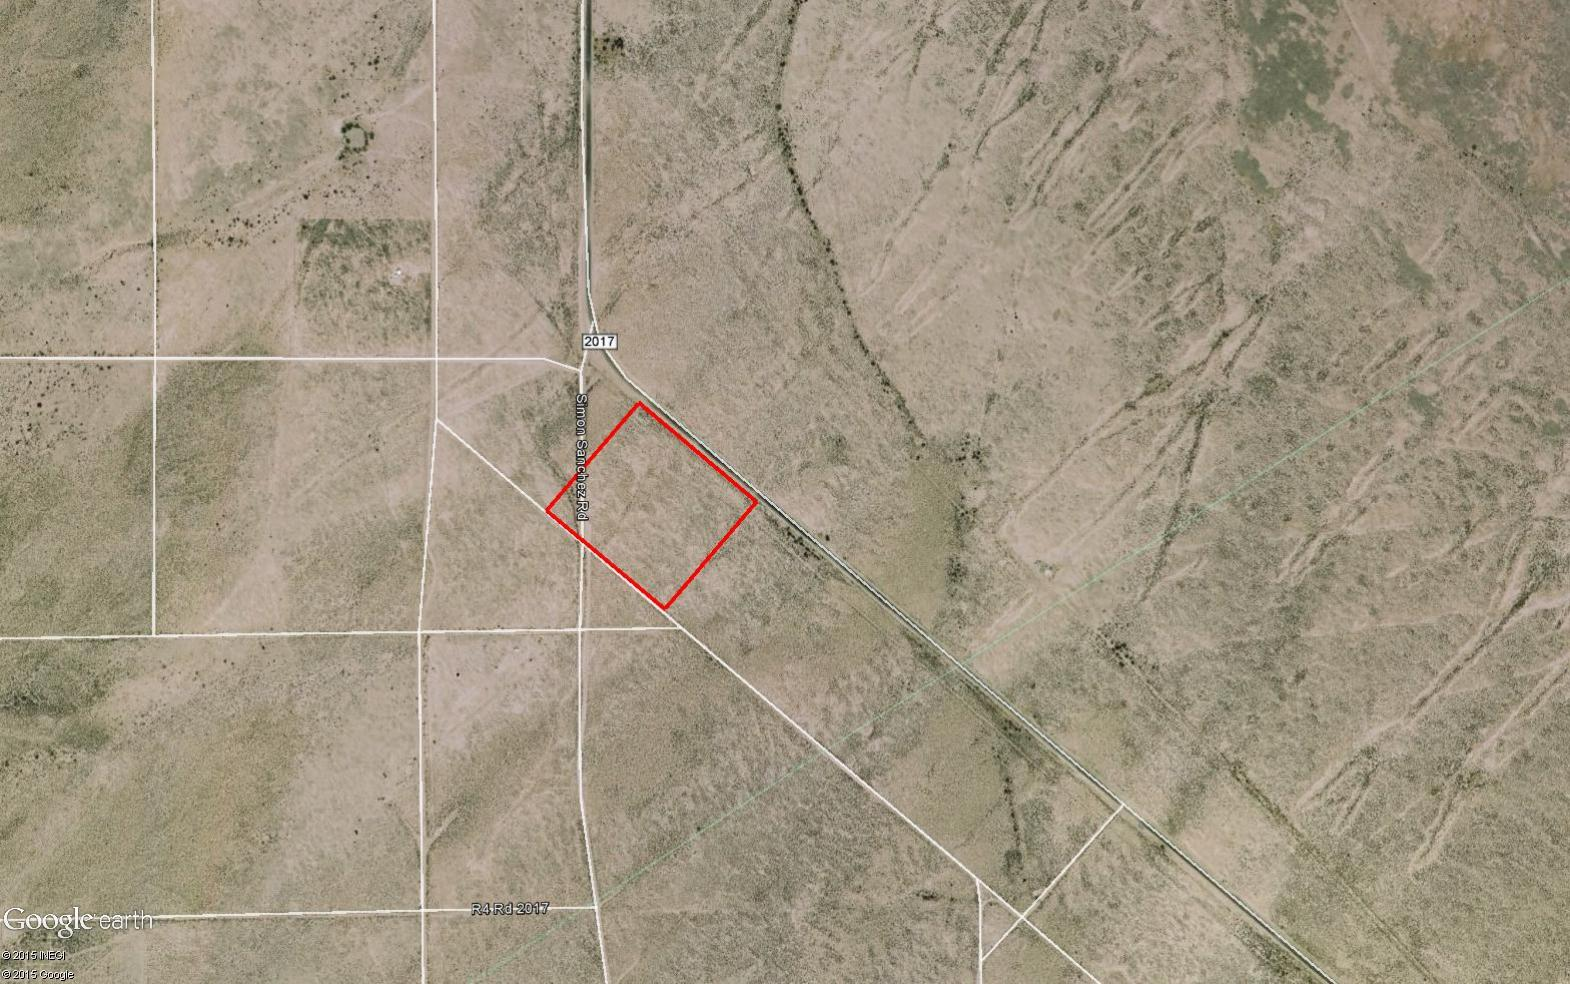 Magnificent 10 Acre Escape on Paved Road Half an Hour from Van Horn - Image 2